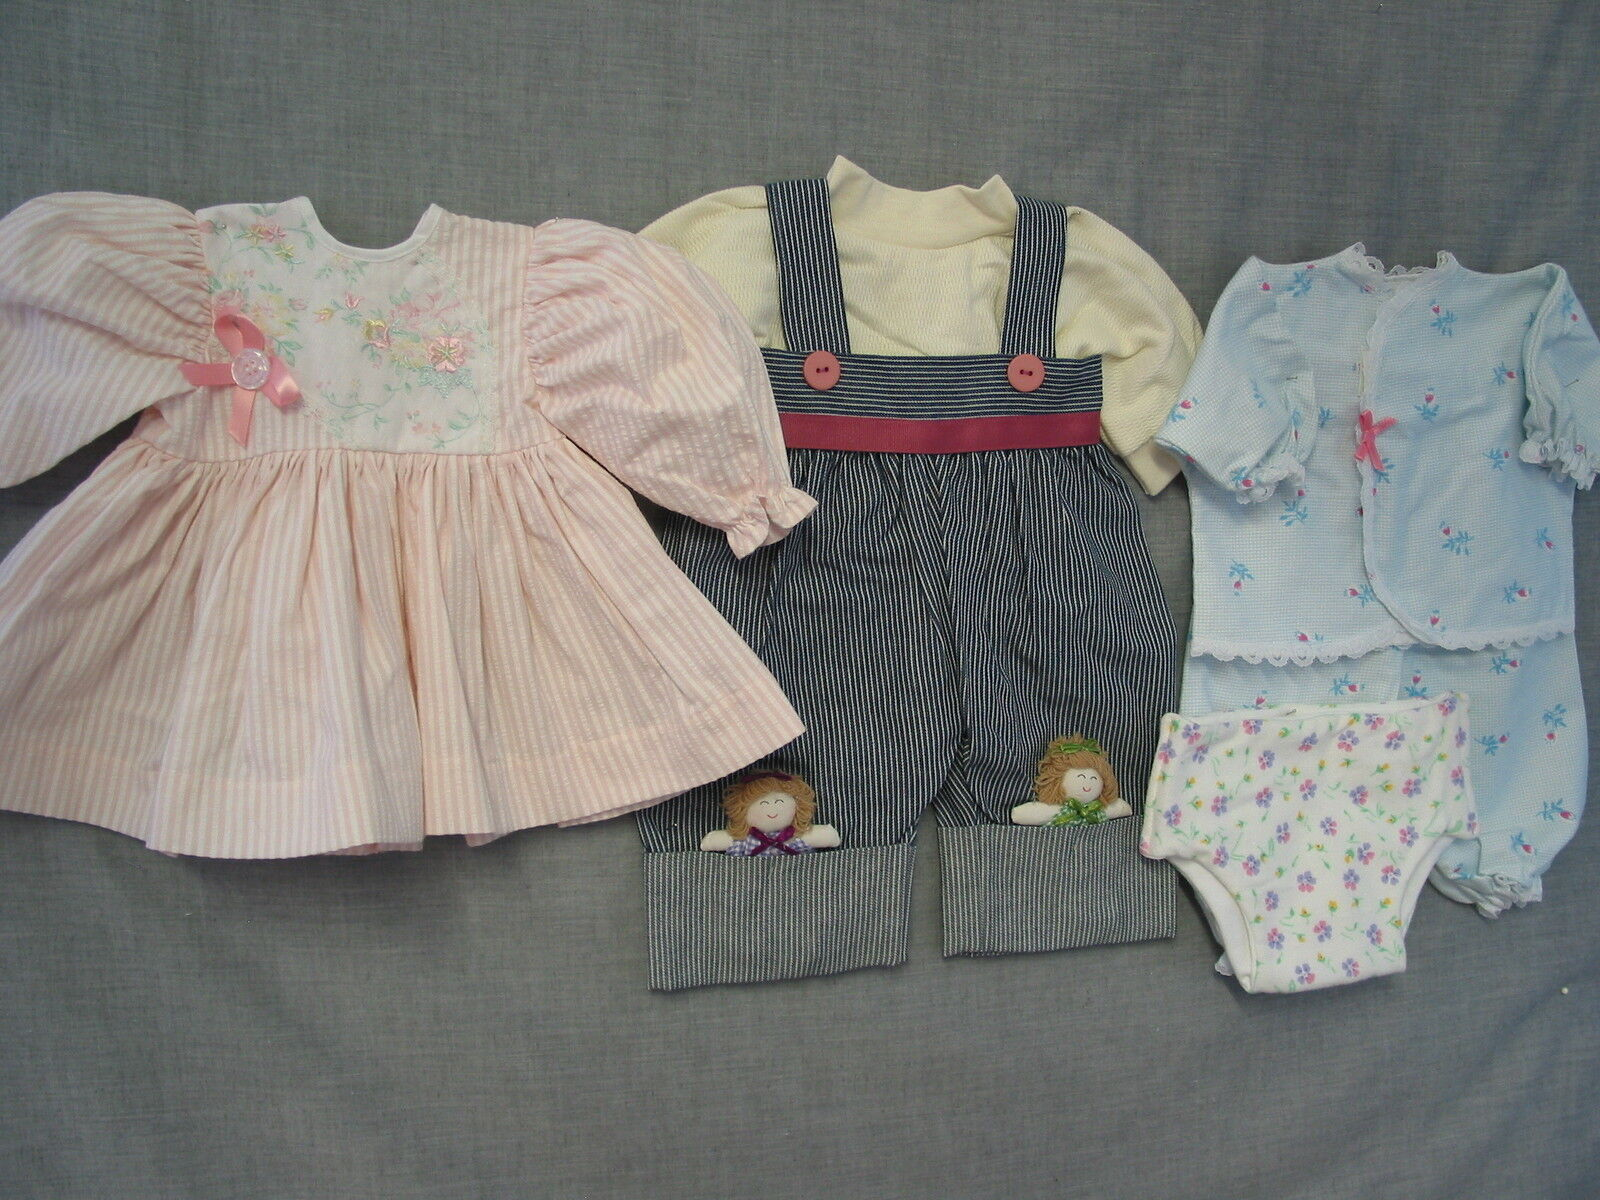 Middleton Berenger Reborn Doll Clothes 19-21  DOLL DREAMS 3 Outfits  Lot G Sale